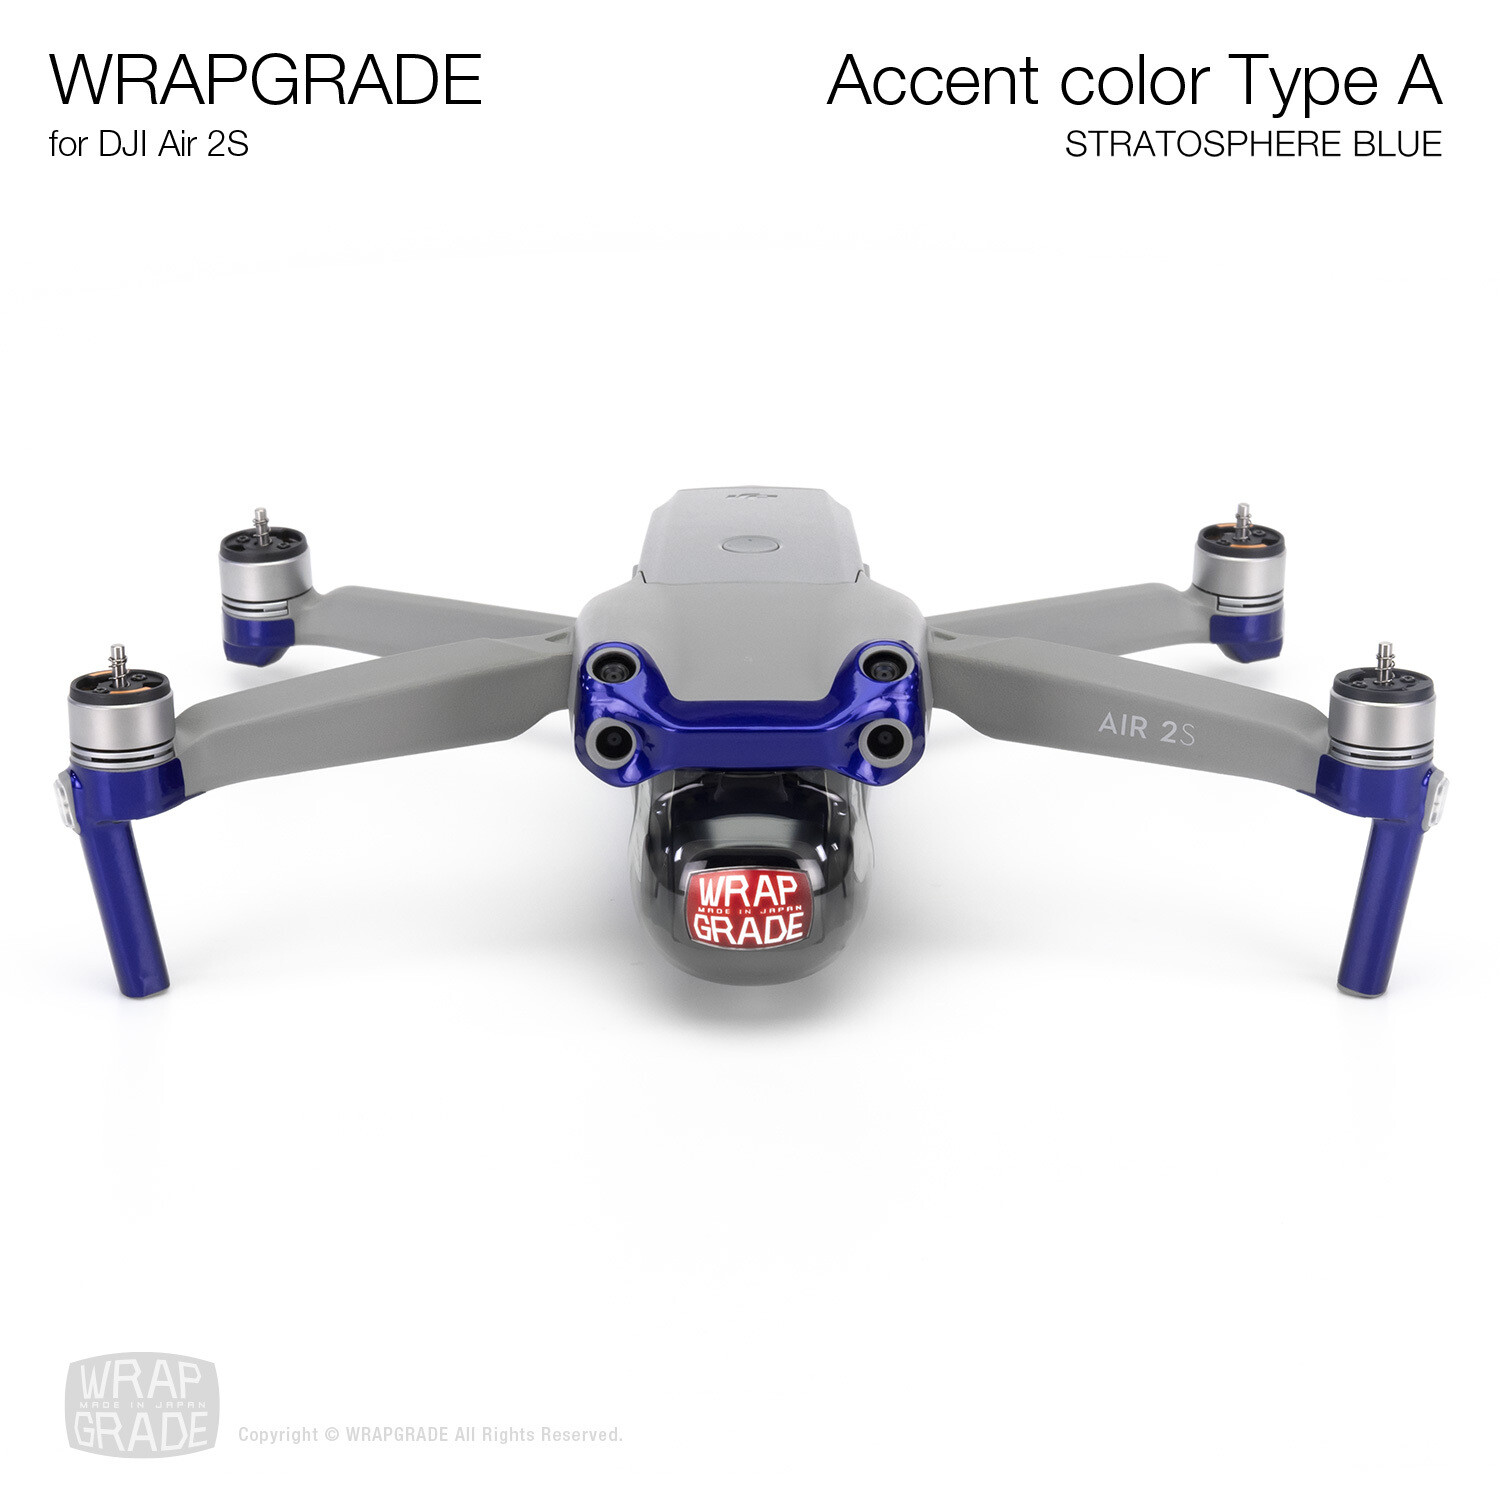 Wrapgrade Skin for DJI Air 2S   Accent Color A (STRATOSPHERE BLUE)